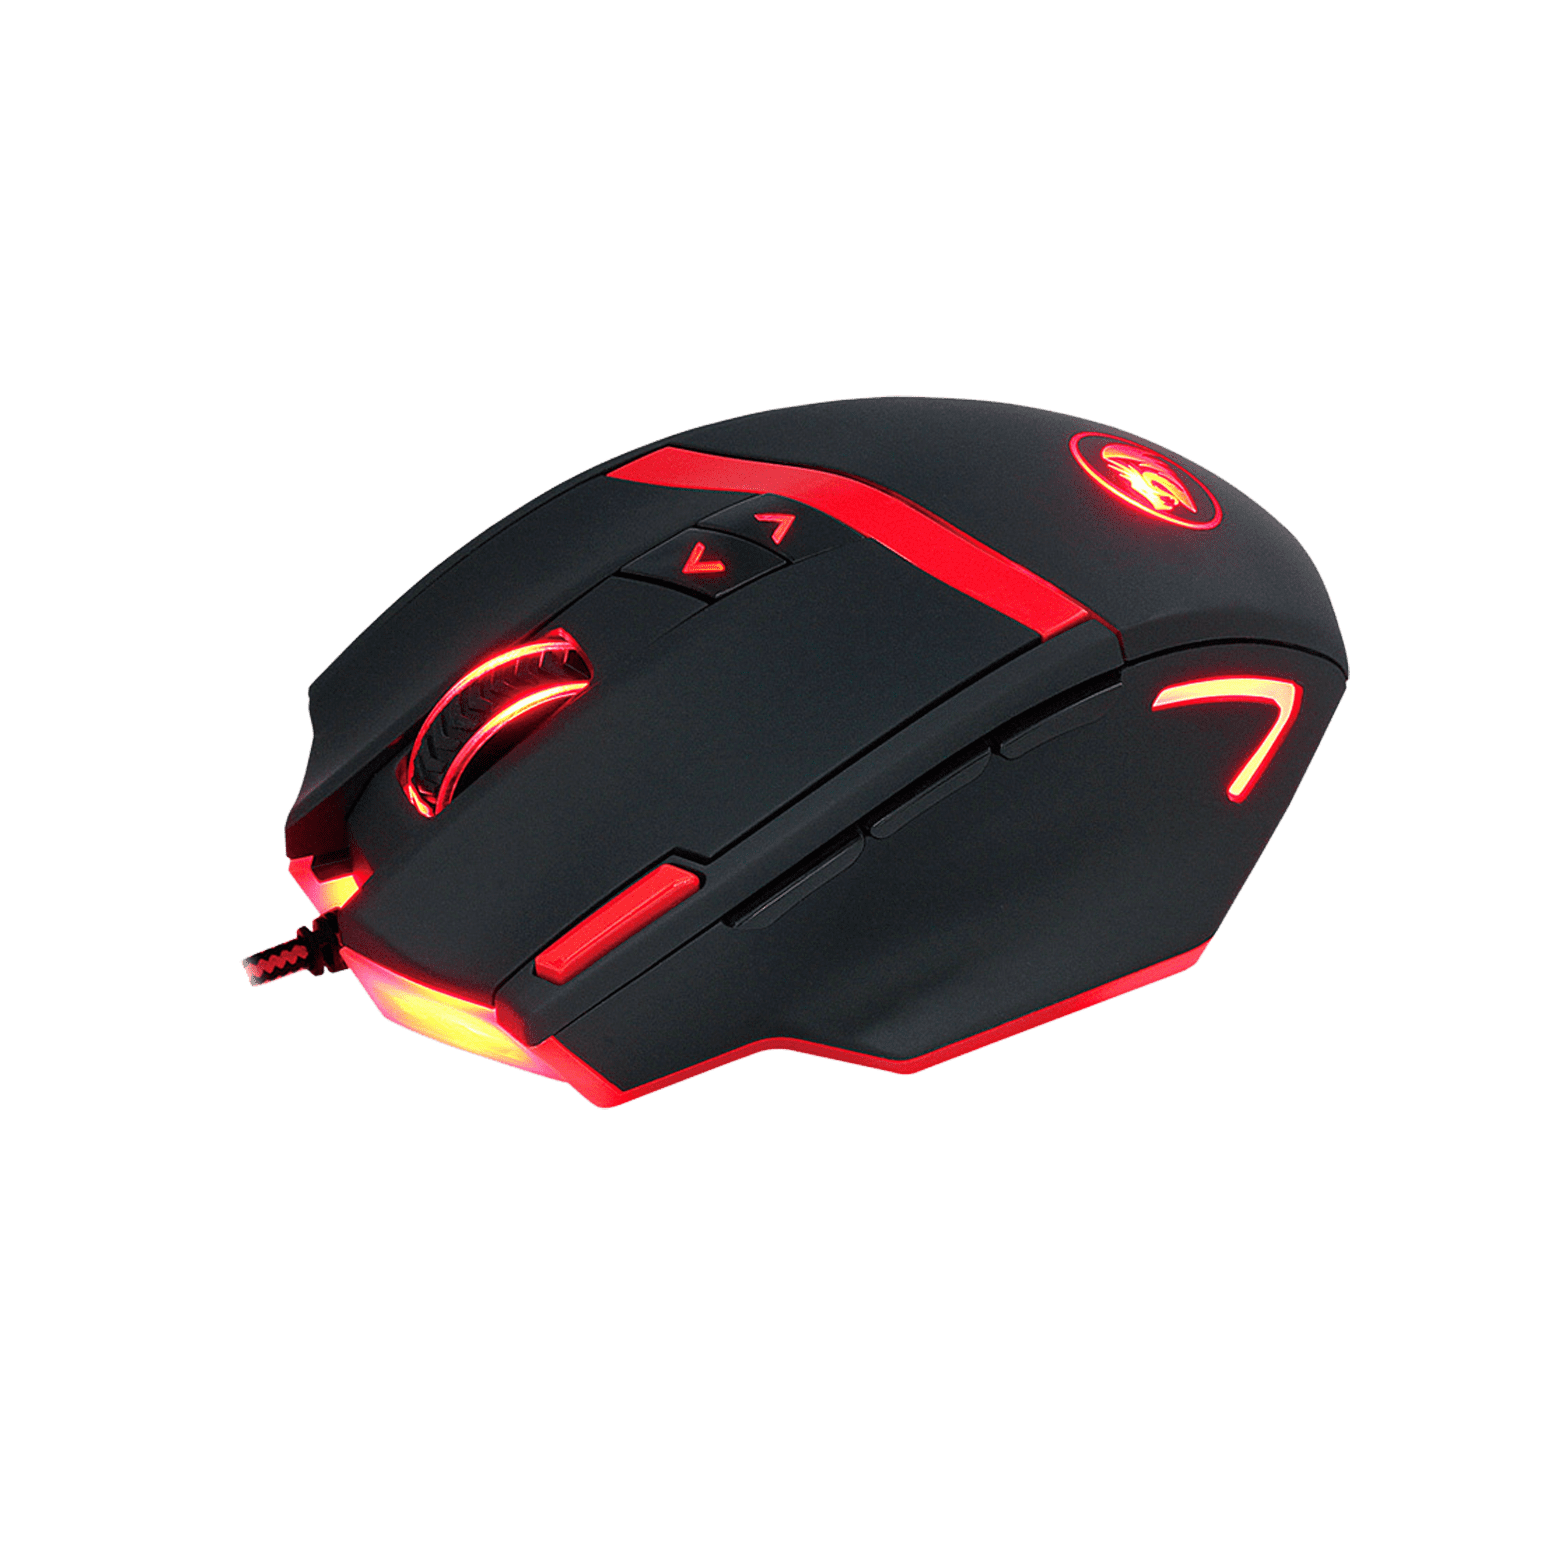 Redragon Mammoth 16400dpi Gaming Mouse Black Syntech